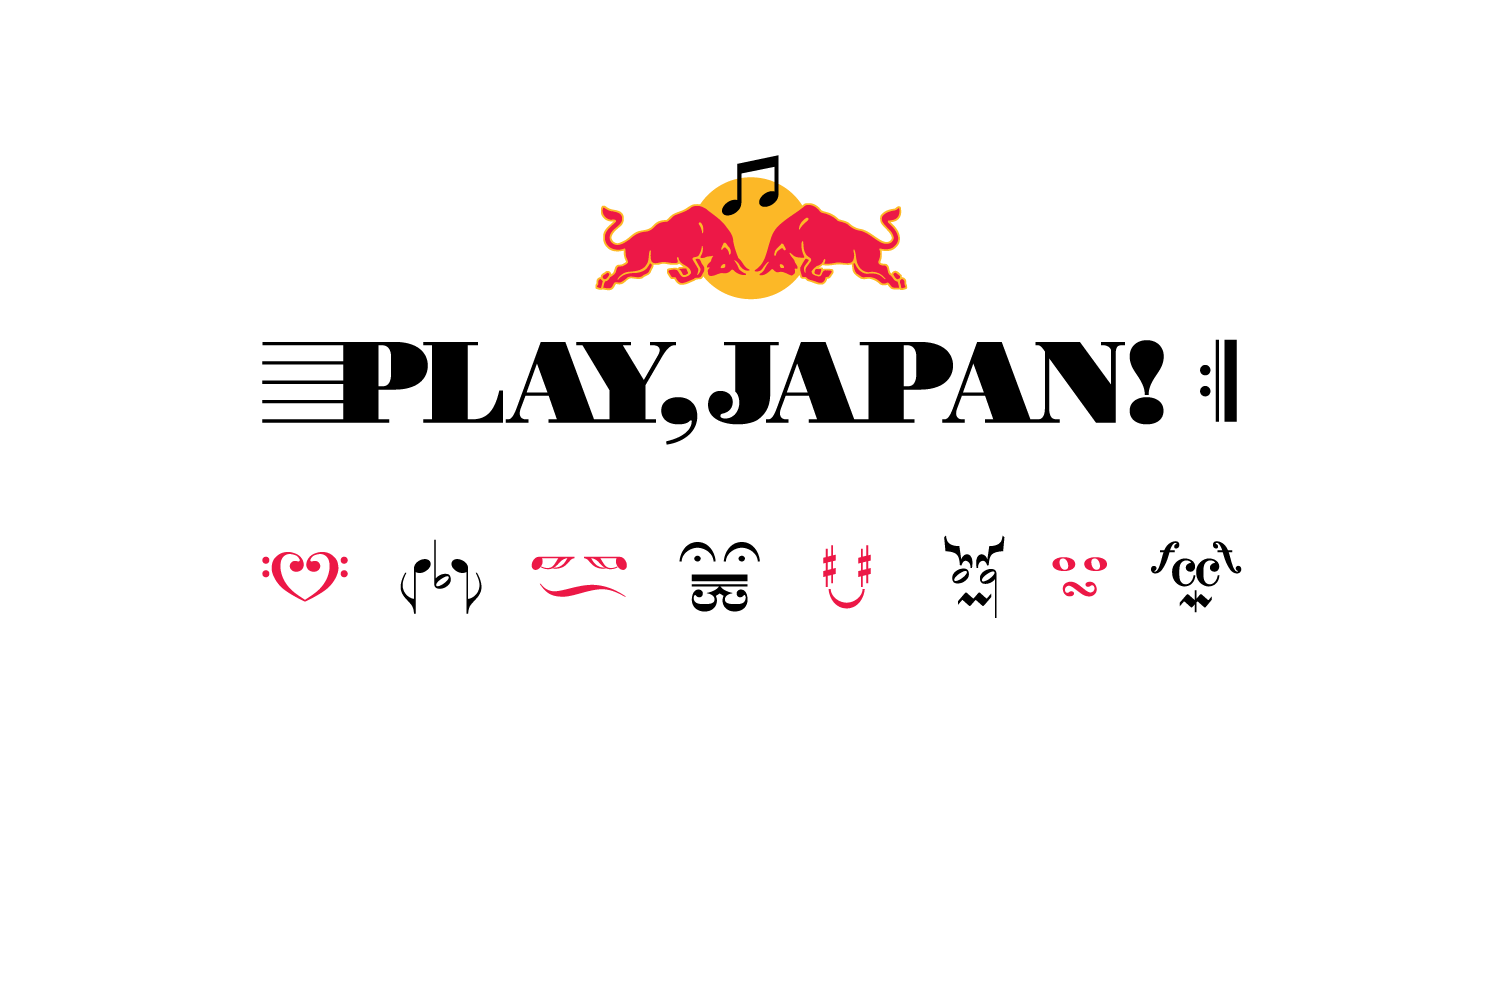 Music free paper from the Red Bull Music Academy. The logotype takes its cues from classic musical notation, which is extended further in the creation of supporting characters that are interjected throughout.